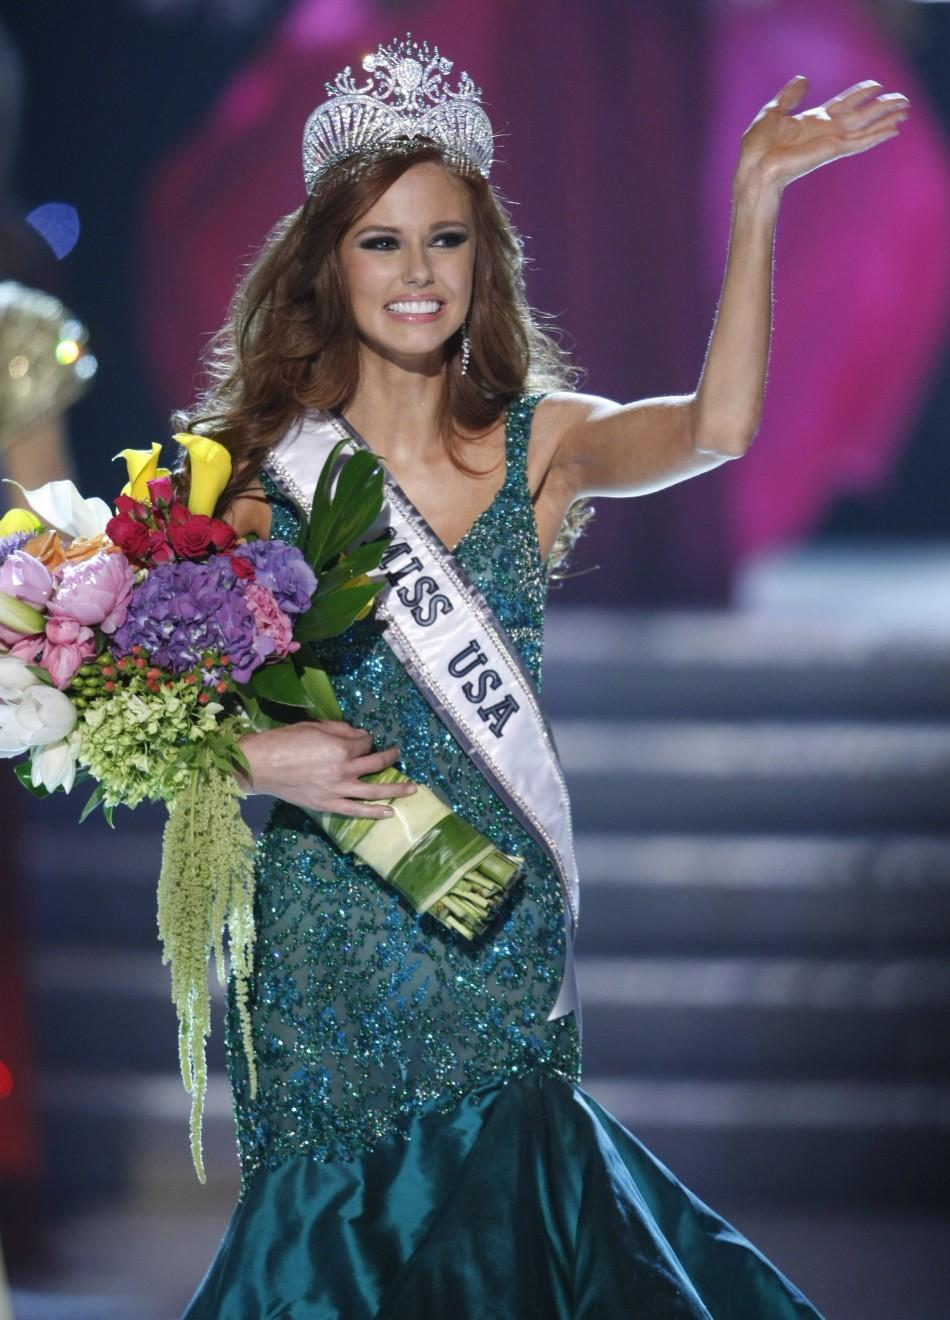 Miss California Alyssa Campanella waves after being crowned Miss USA 2011 during the Miss USA pageant in the Theatre for the Performing Arts at Planet Hollywood Hotel and Casino in Las Vegas, Nevada June 19, 2011.